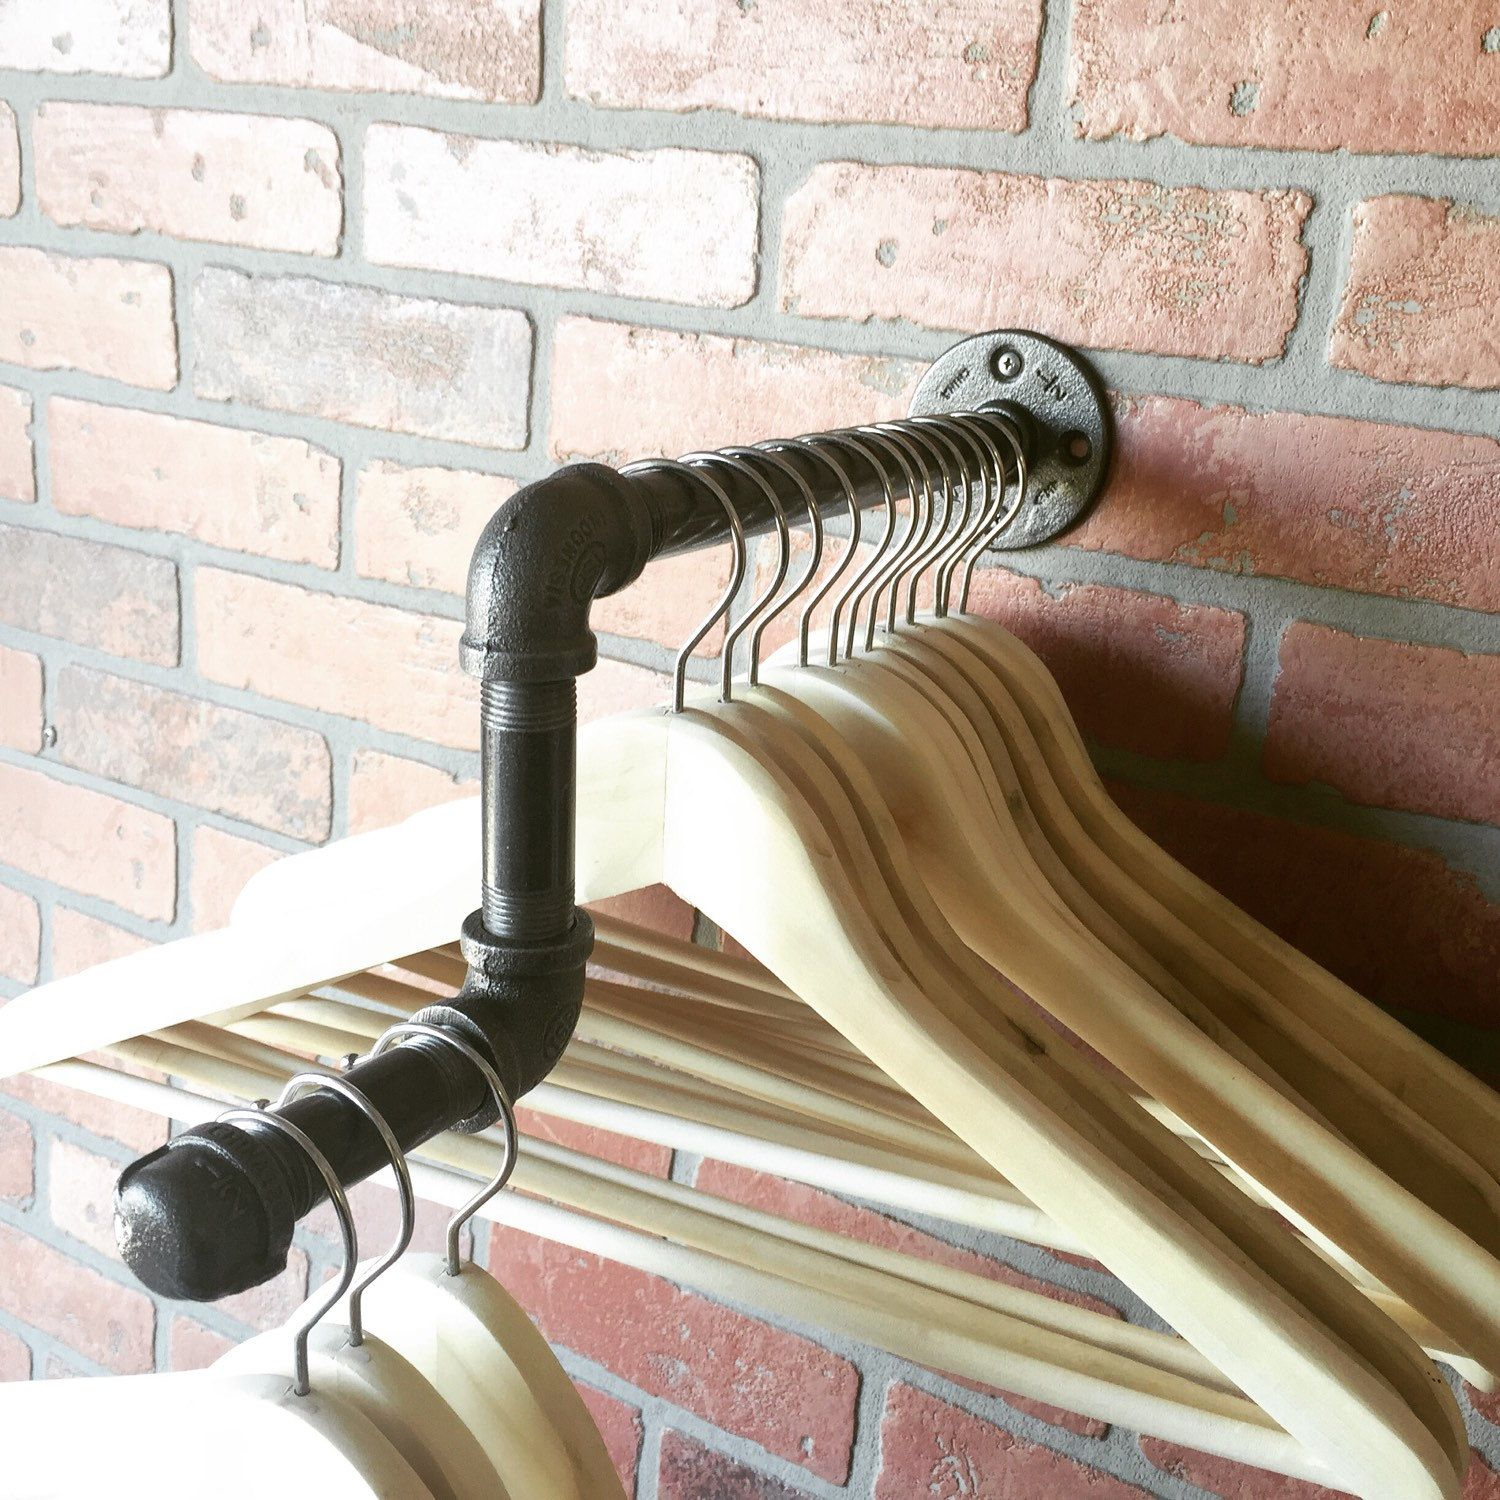 Elbowed Clothing Rack Great For Retail Displays